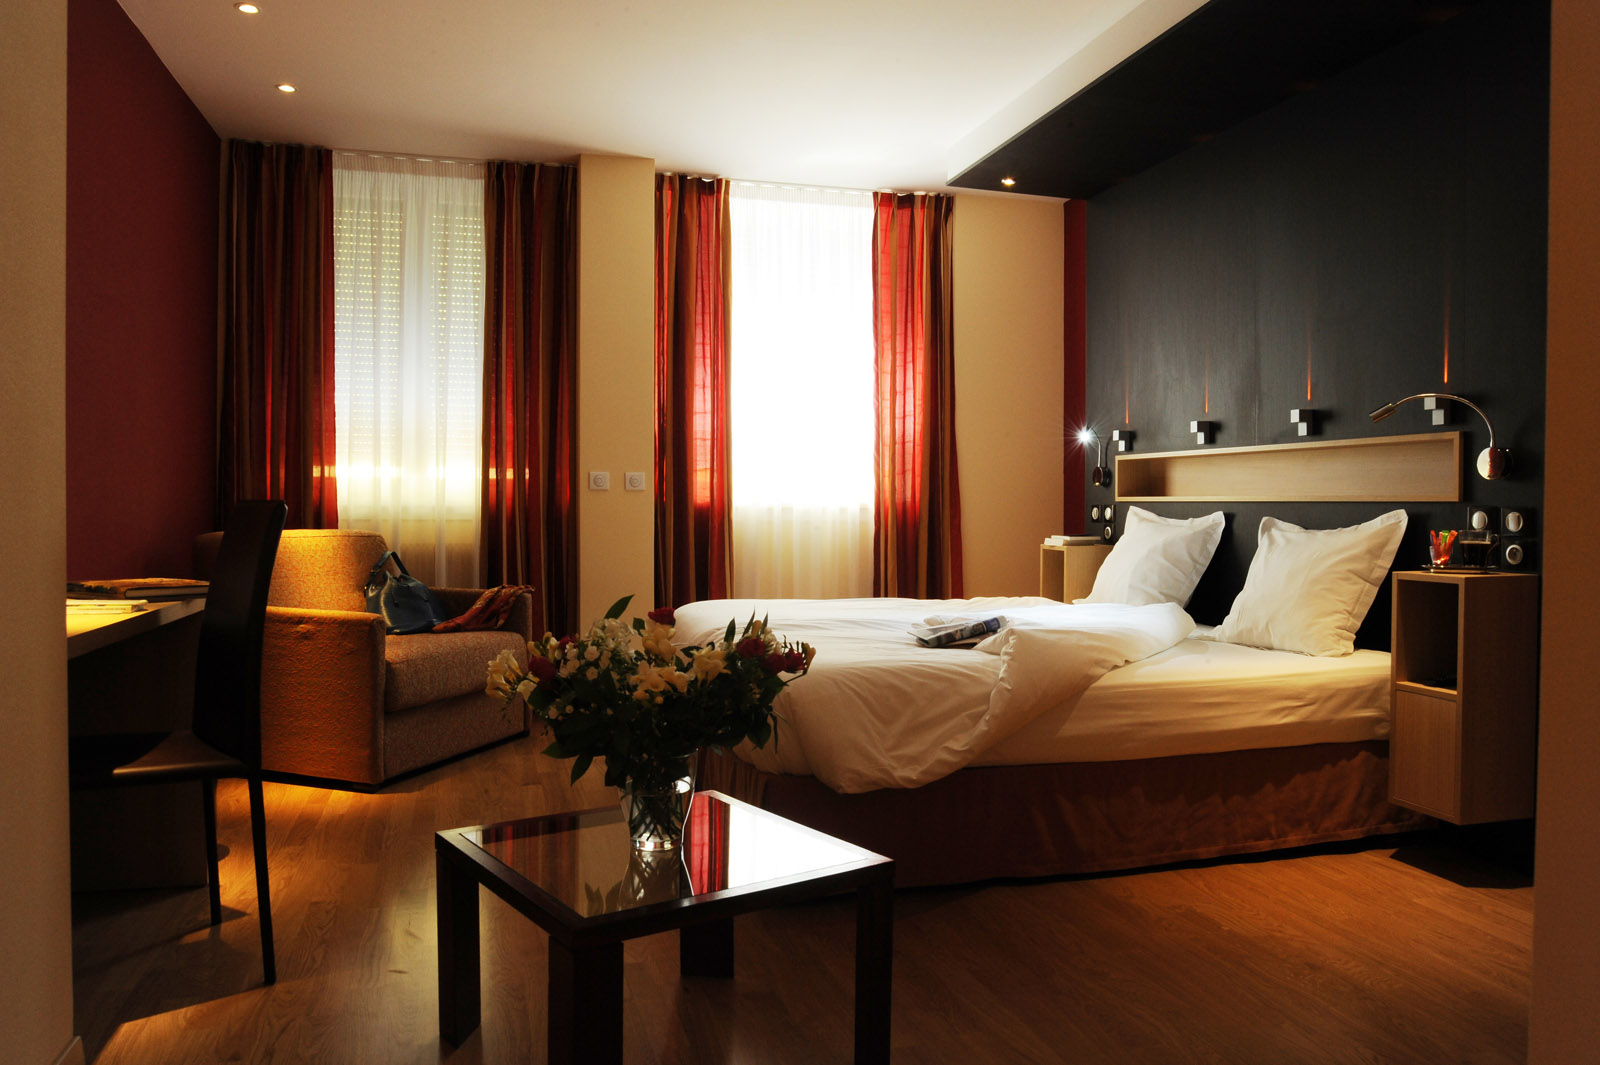 Hotel Avec Chambres Antiallergiques Hotel Strasbourg Centre Proche